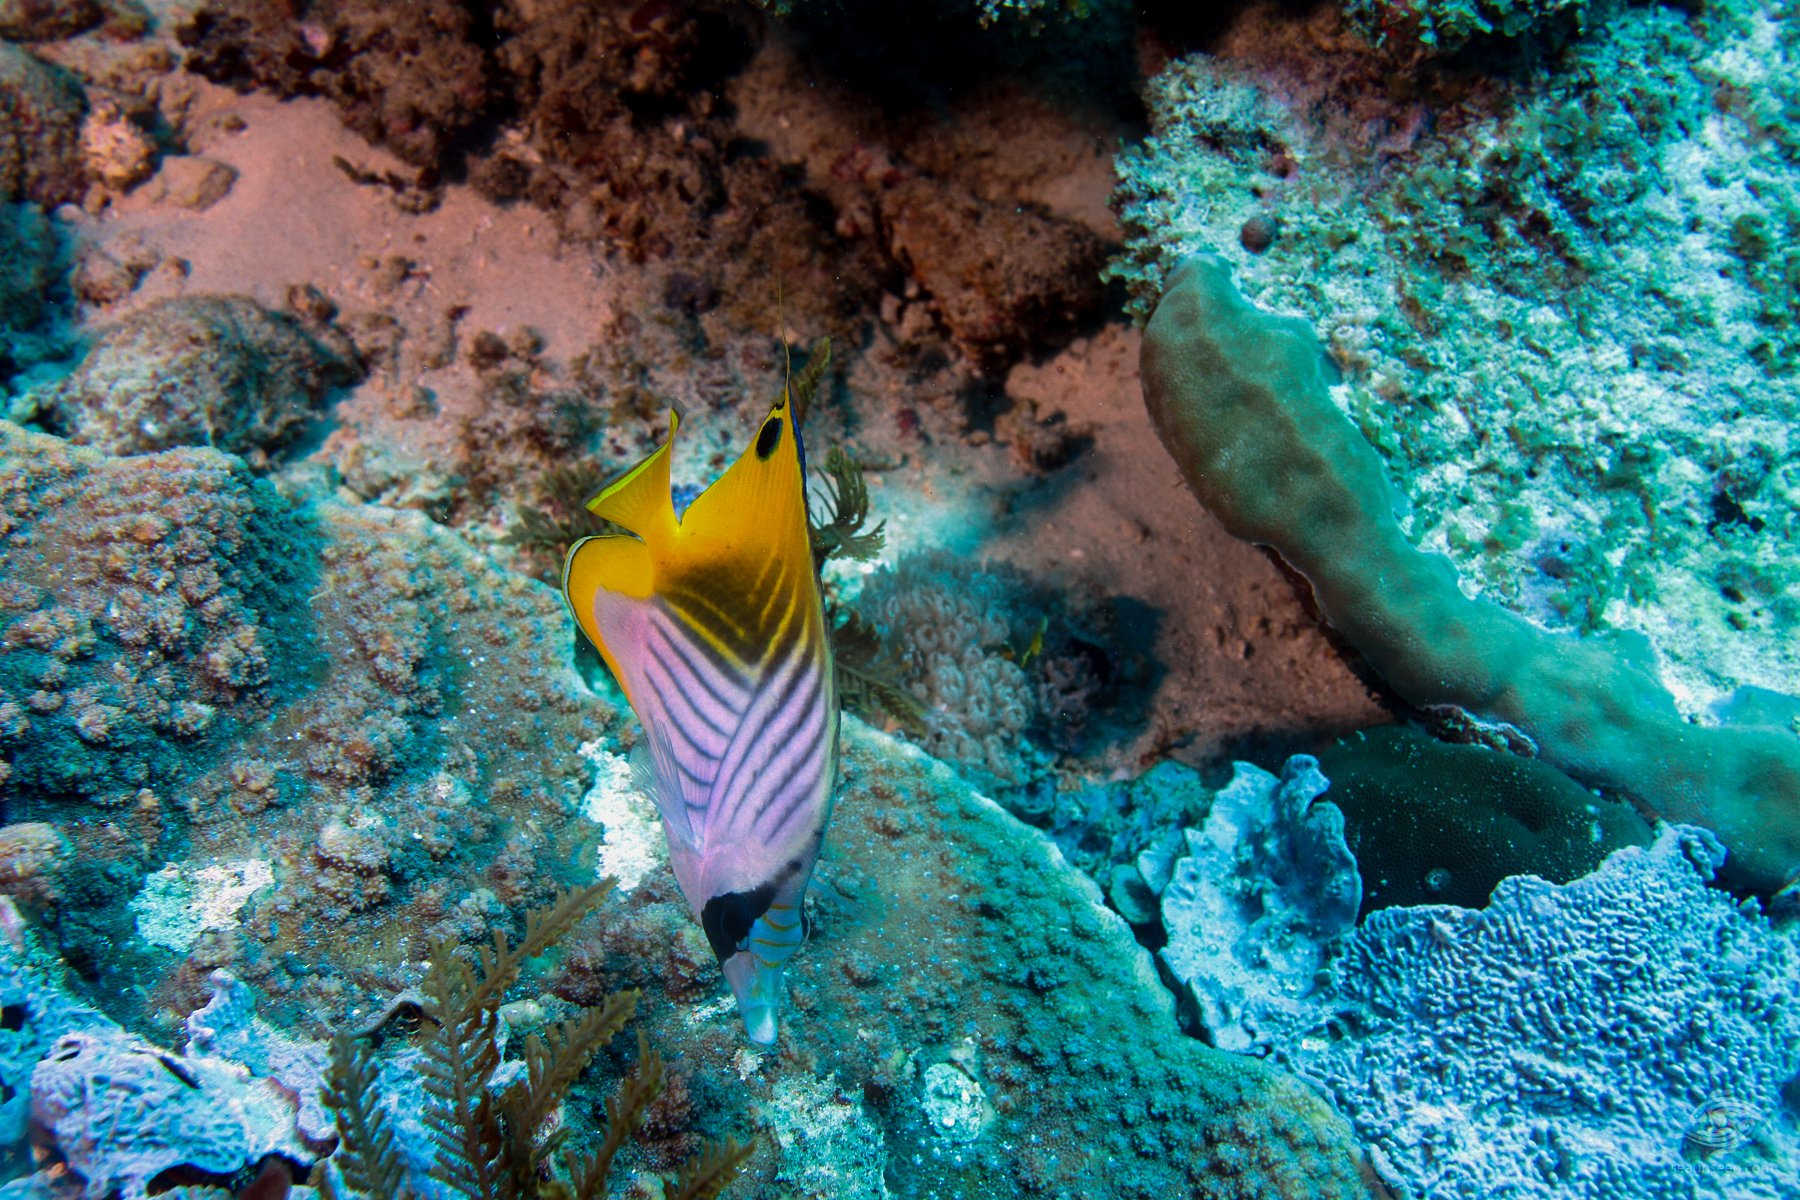 A threadfin butterflyfish, Chaetodon auriga